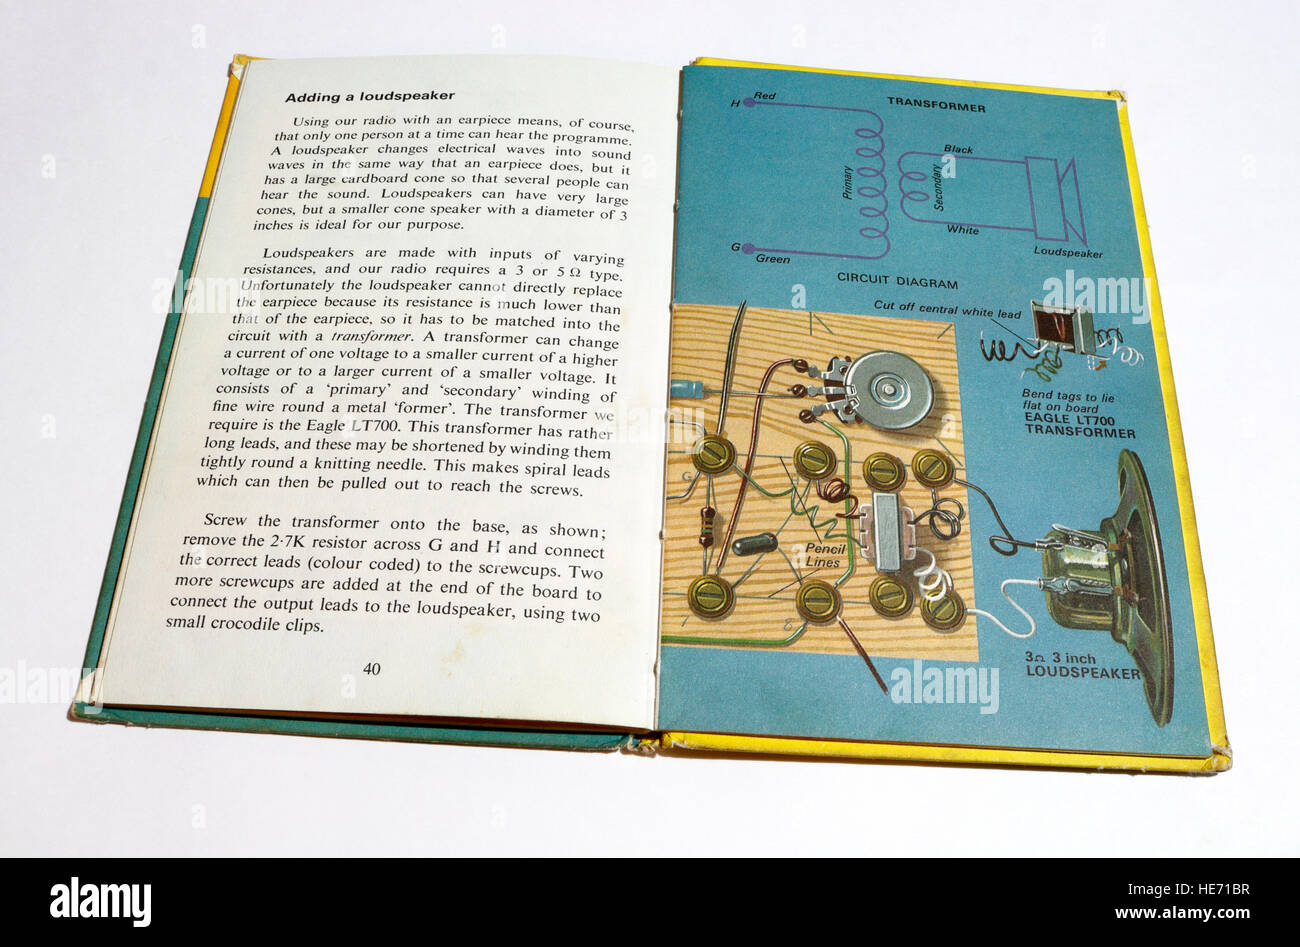 Circuit Diagram Stock Photos Images Alamy Book Page From Ladybird Making A Transistor Radio Image